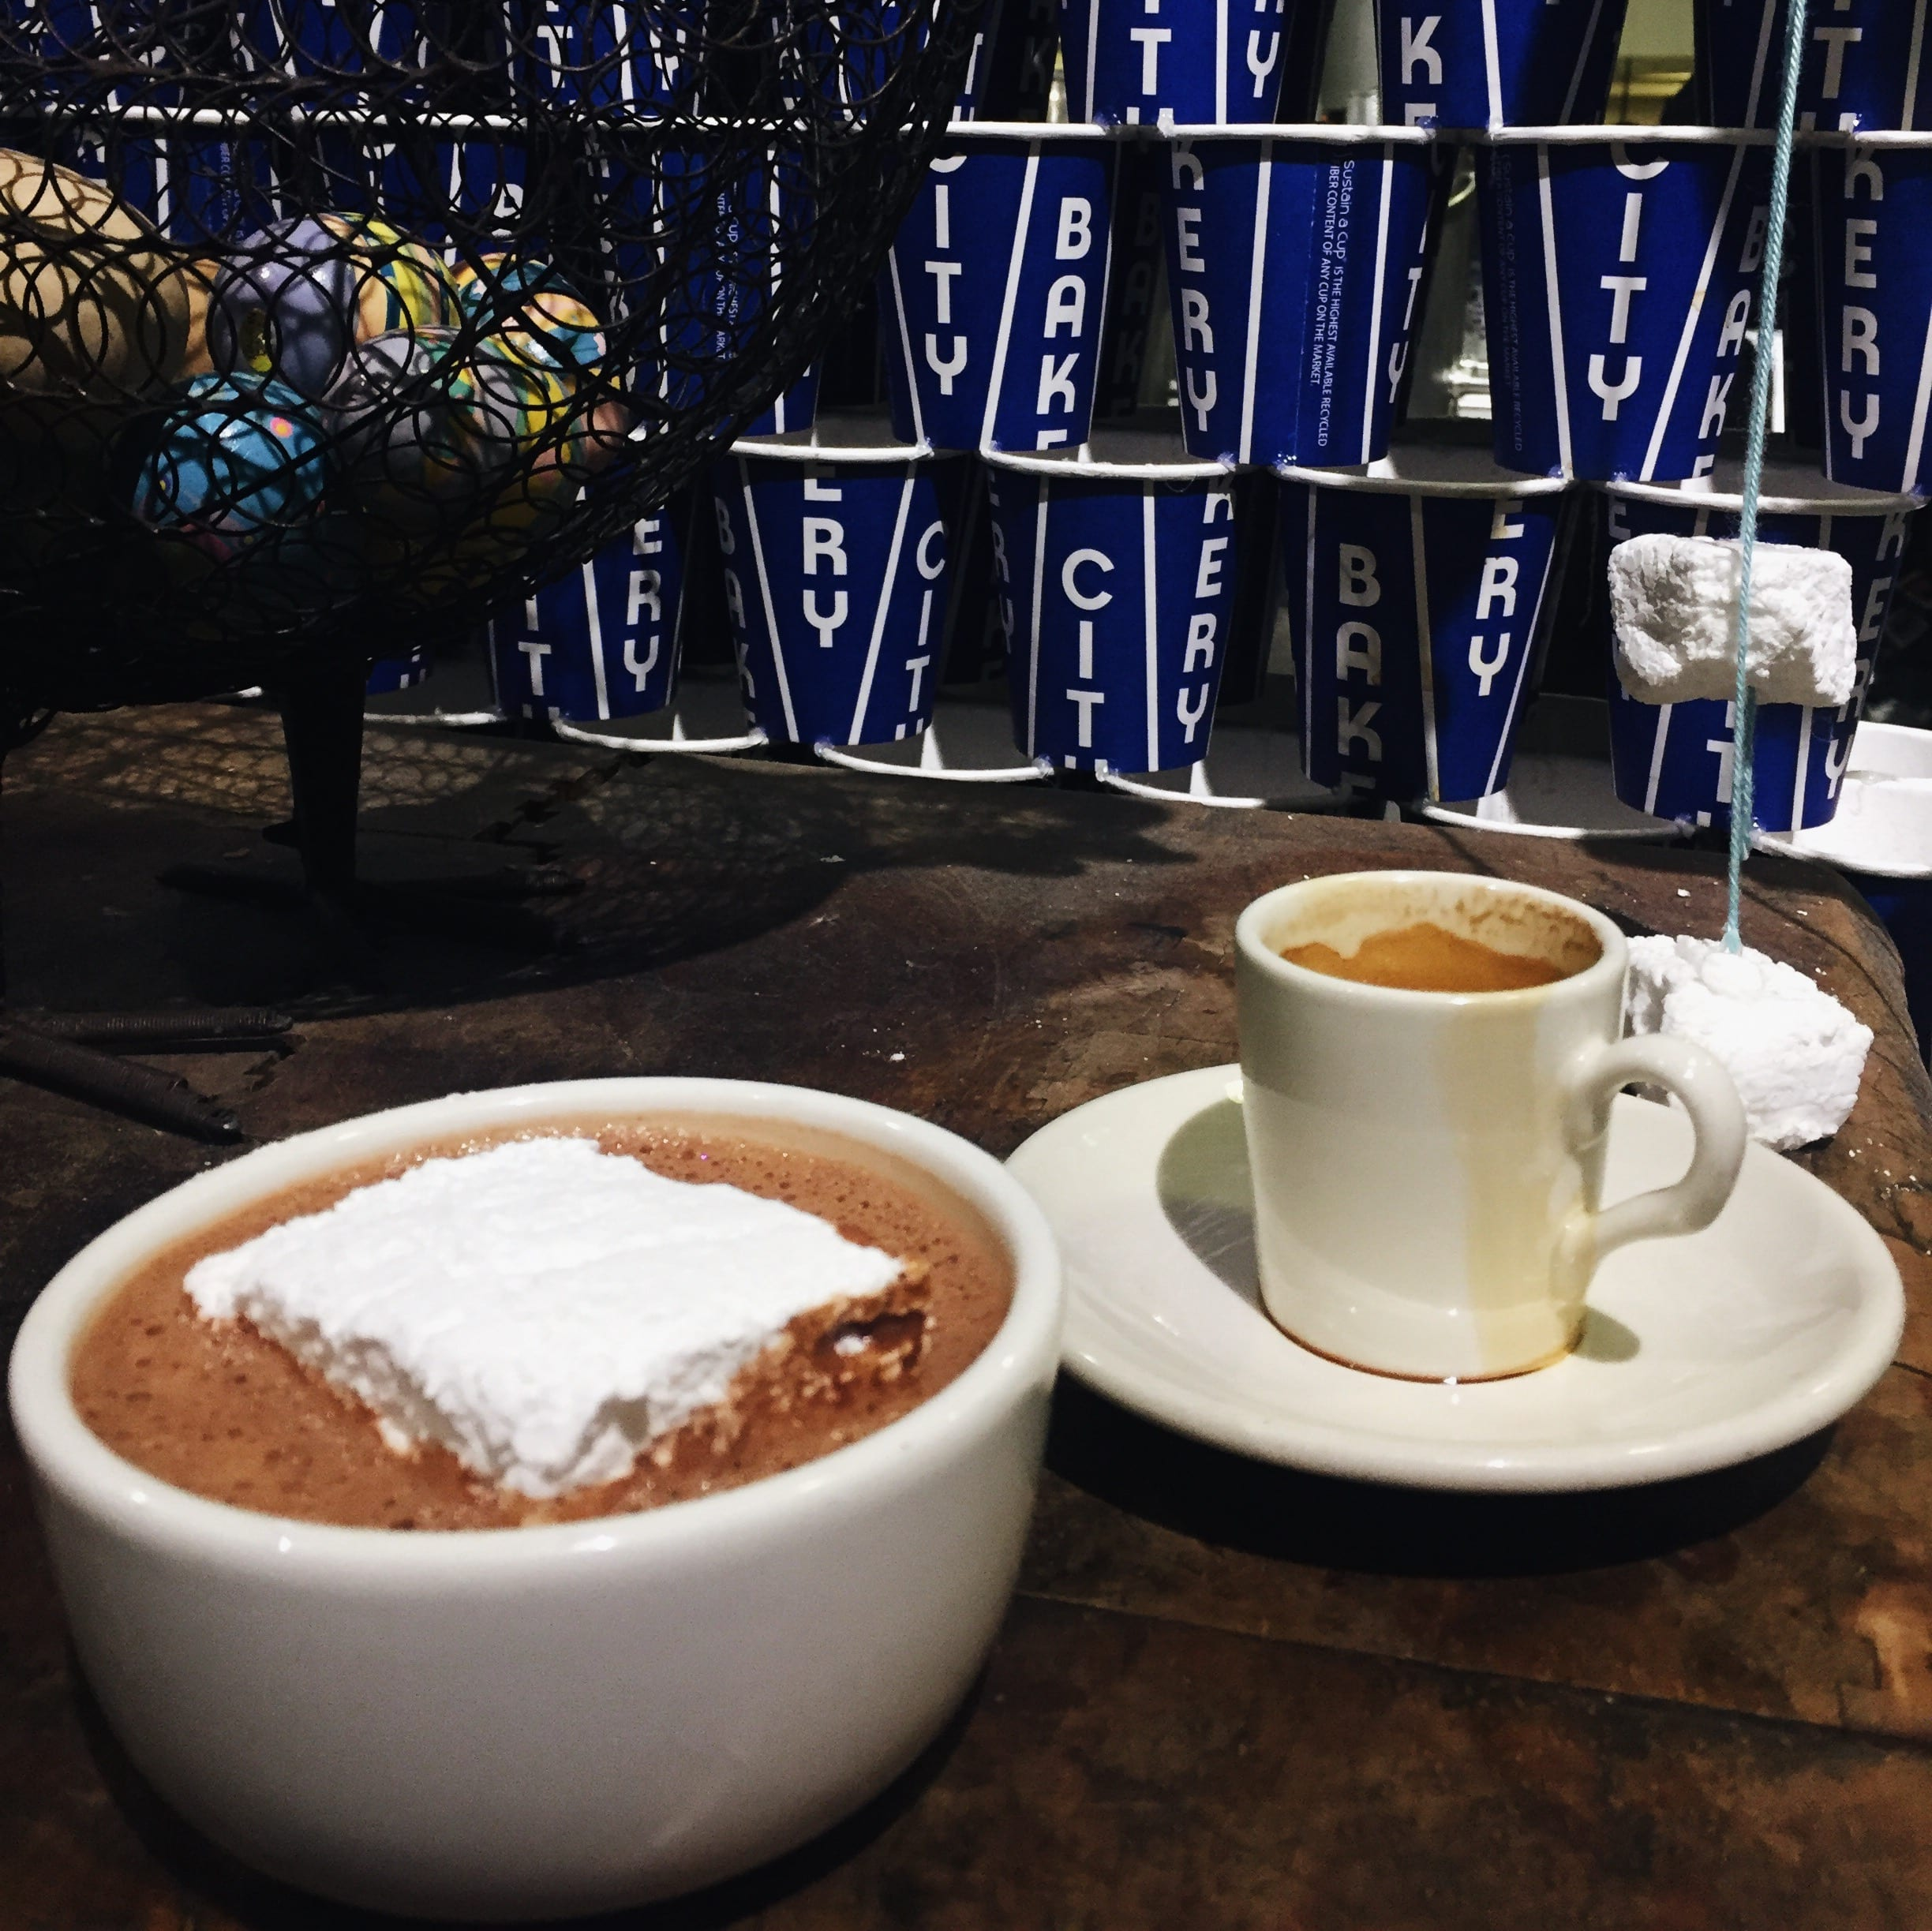 Hot chocolate and espresso at City Bakery for coffee date in mugs.